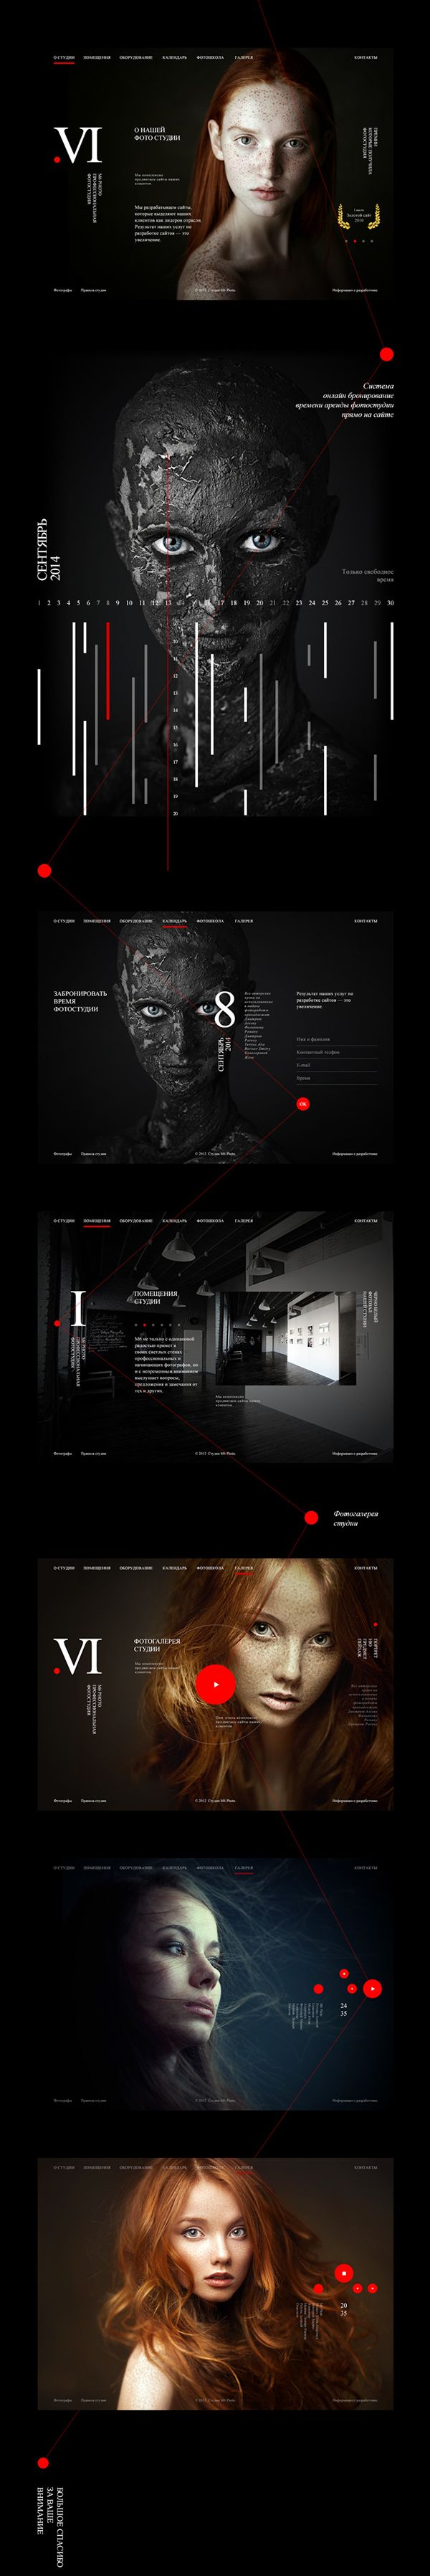 M6 Photo on Behance